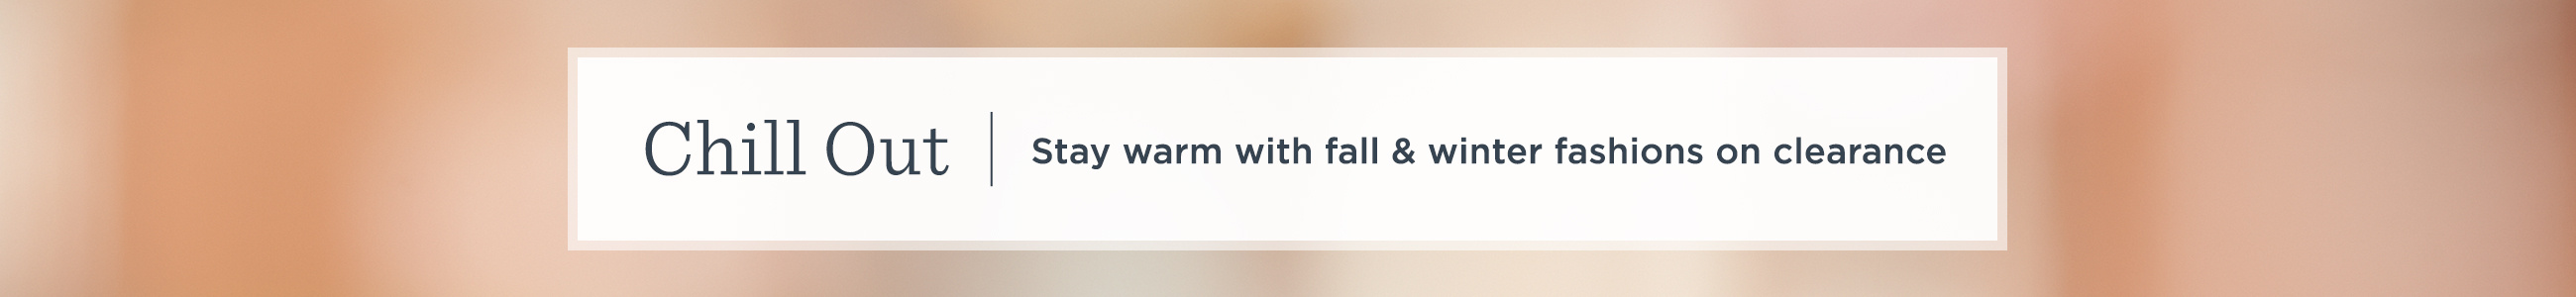 Chill Out - Stay warm with fall & winter fashions on clearance